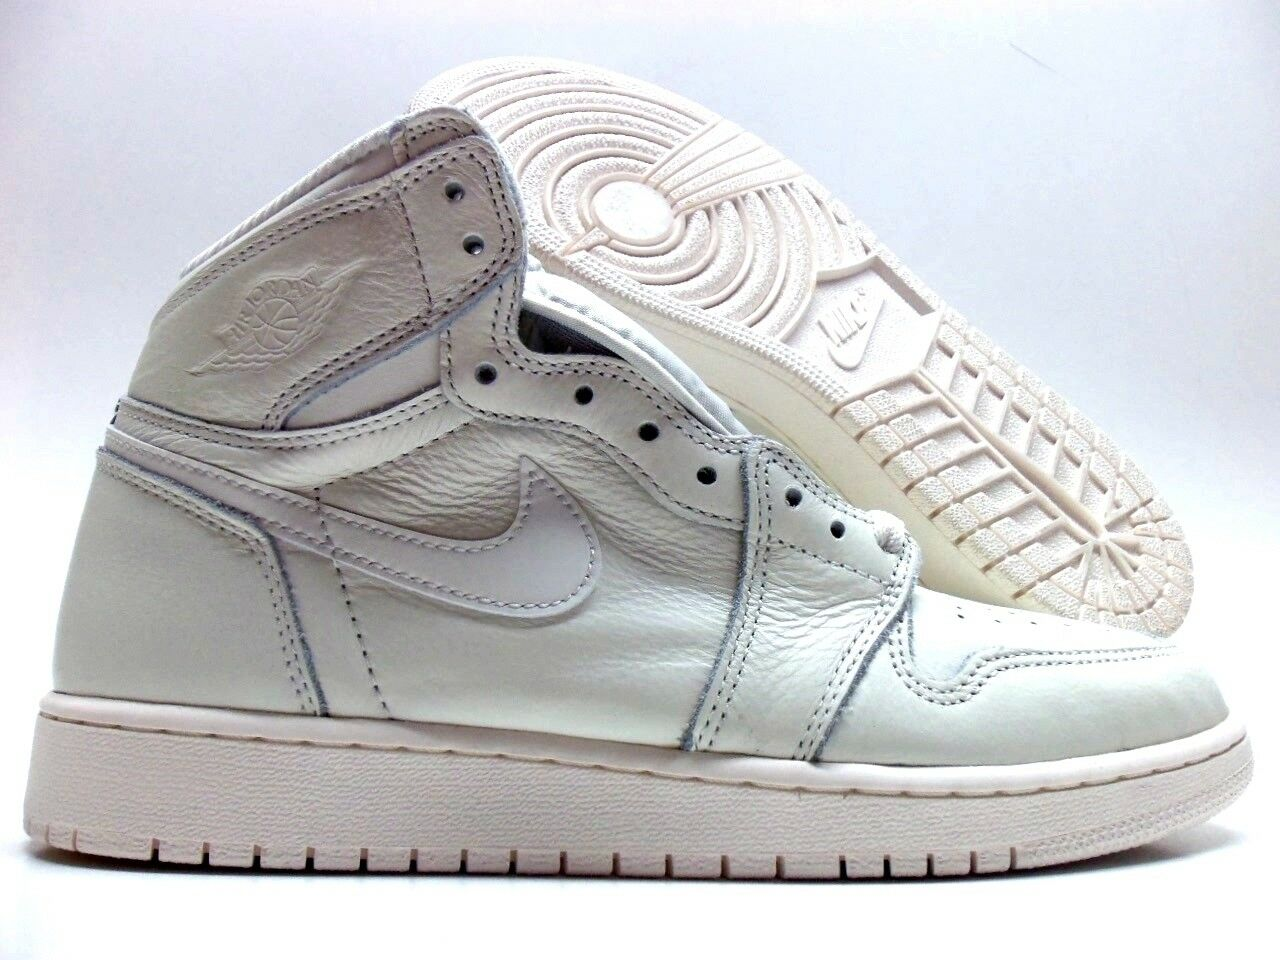 NIKE AIR JORDAN 1 RETRO HIGH OG BG SAIL UNI RED SIZE 7Y WOMEN'S 8.5 [575441-114]